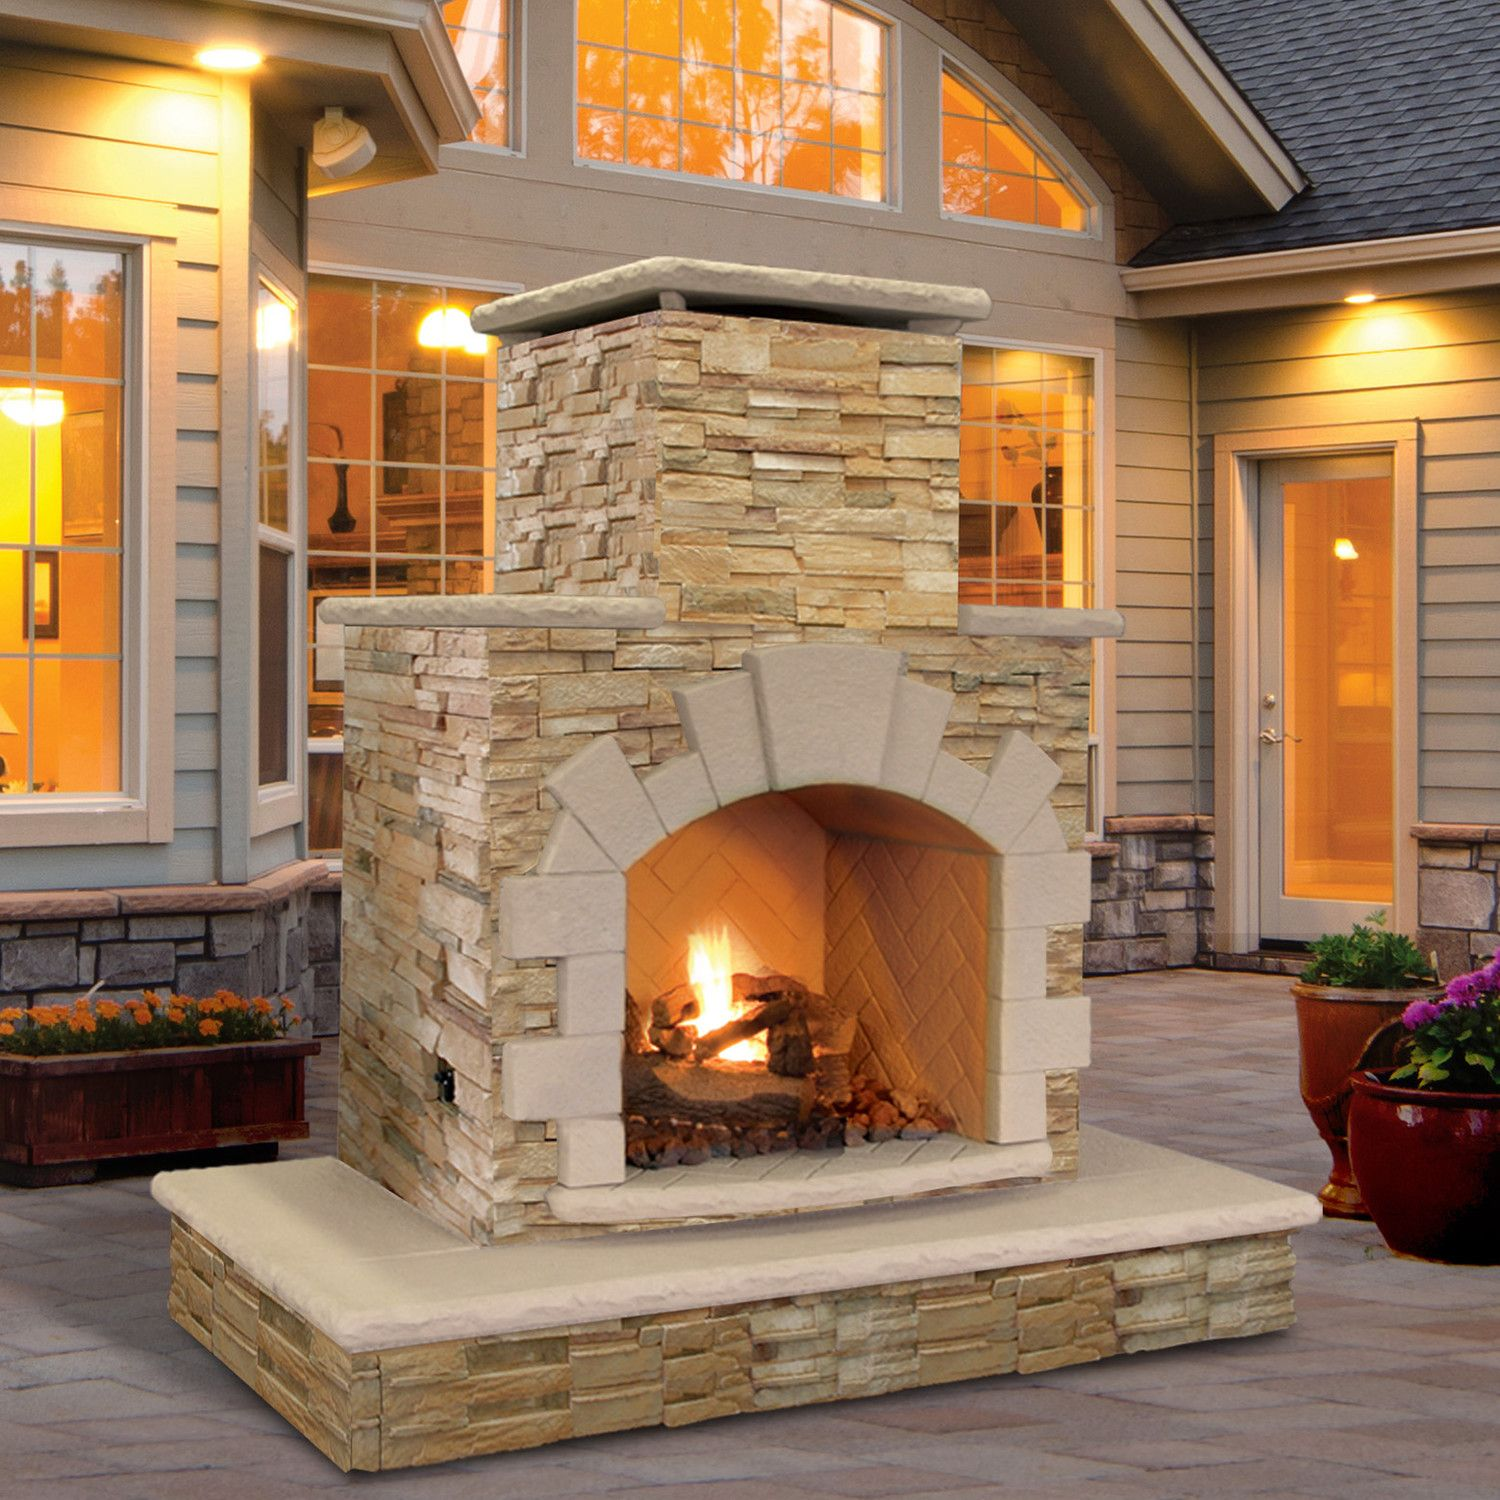 Home Decor Natural Stone Propane Gas Outdoor Fireplace Wayfair